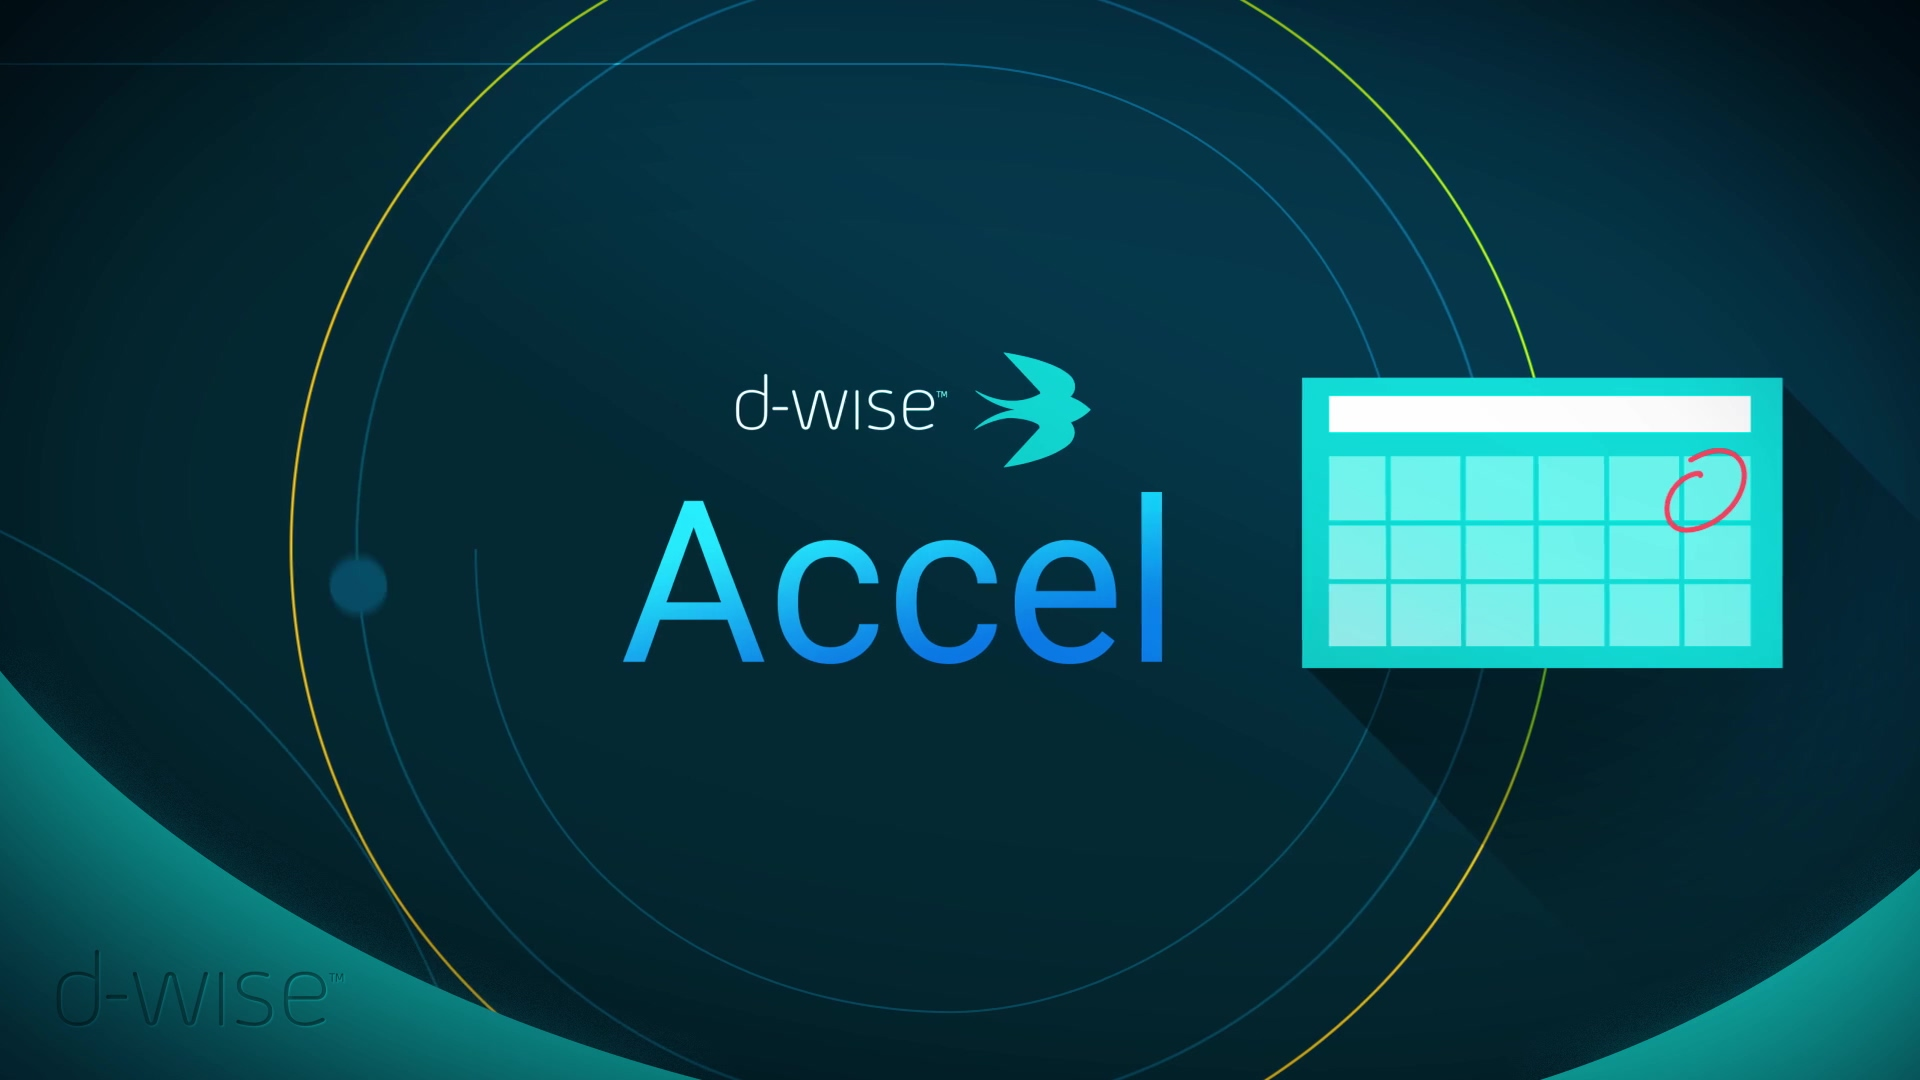 d-wise Accel Animation